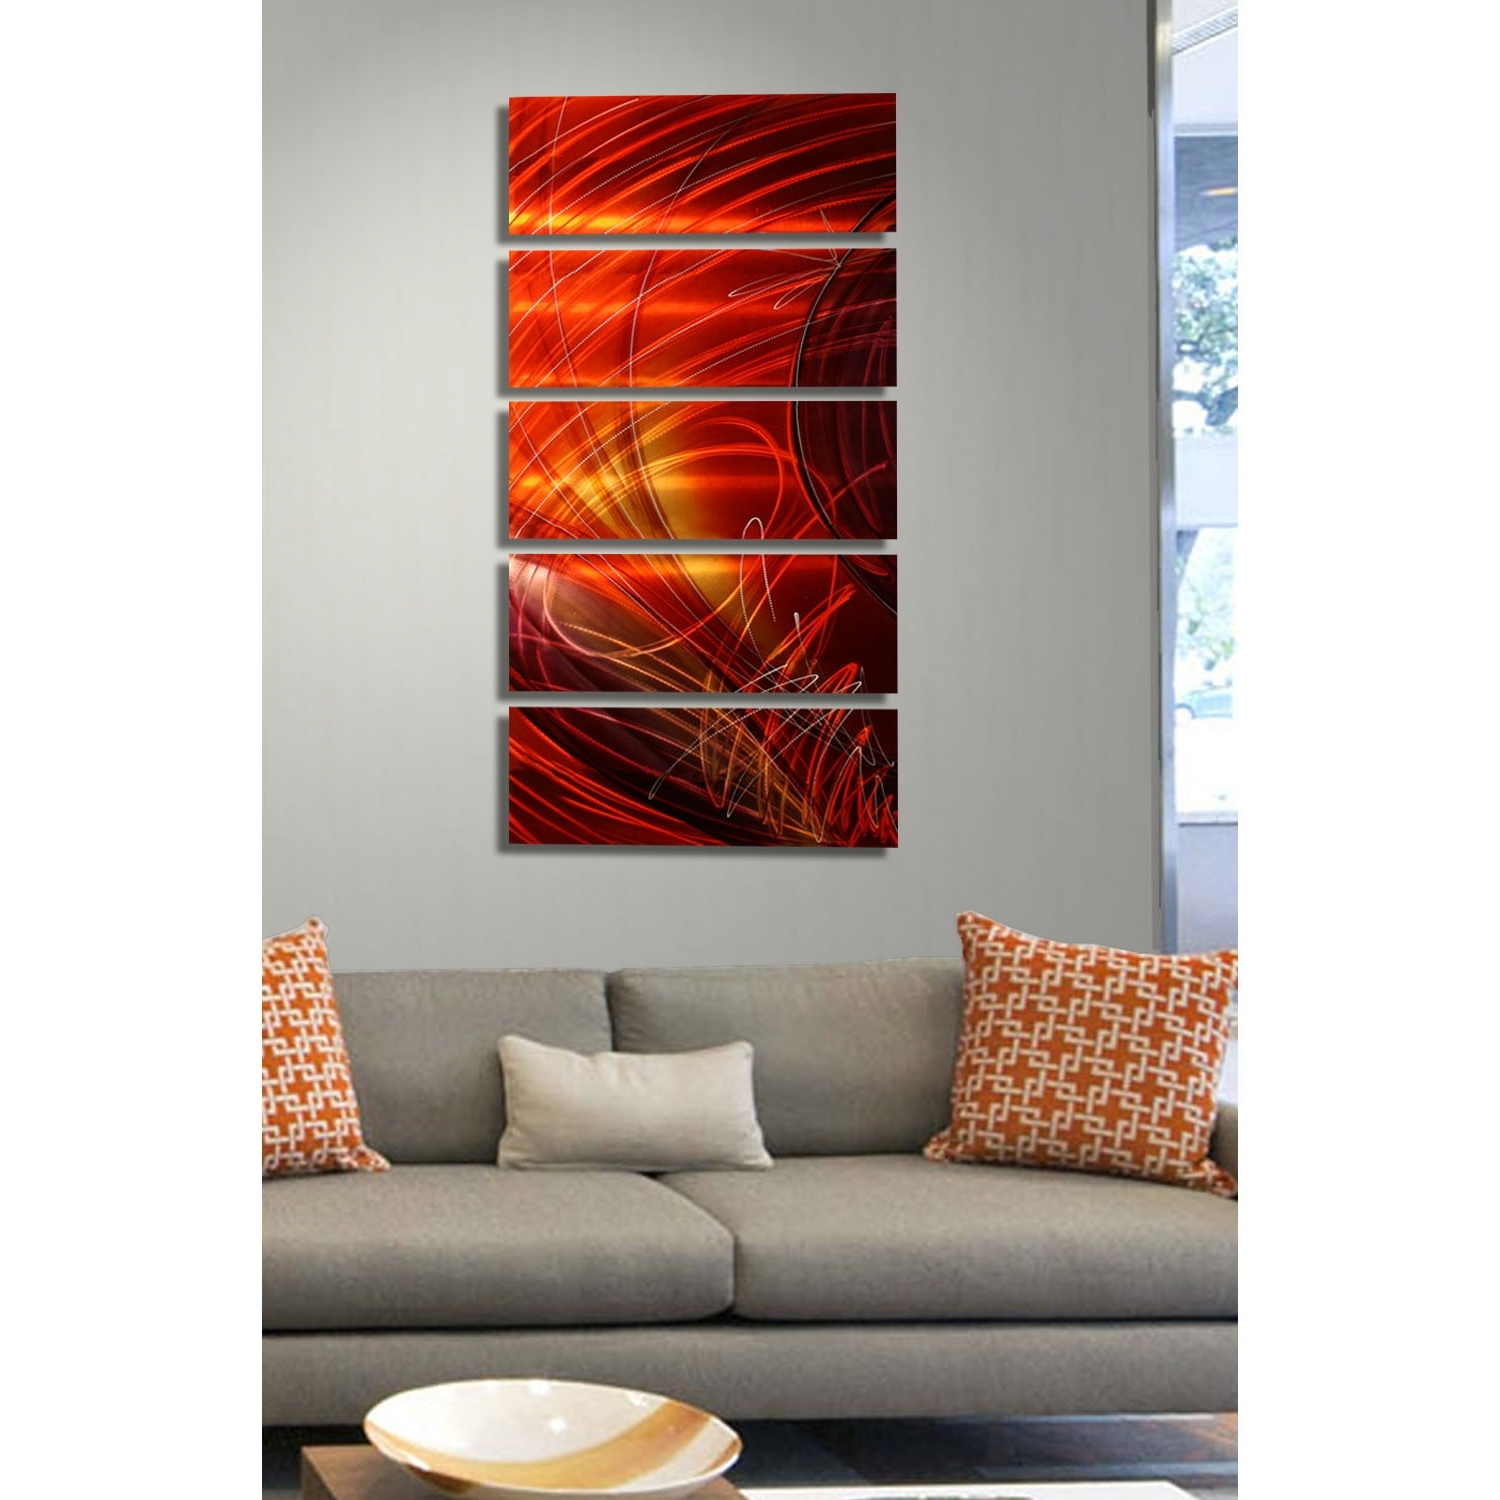 5 Panel Wall Art Within Latest Ruby Sky – Red, Gold And Purple Metal Wall Art – 5 Panel Wall Décor (View 12 of 15)